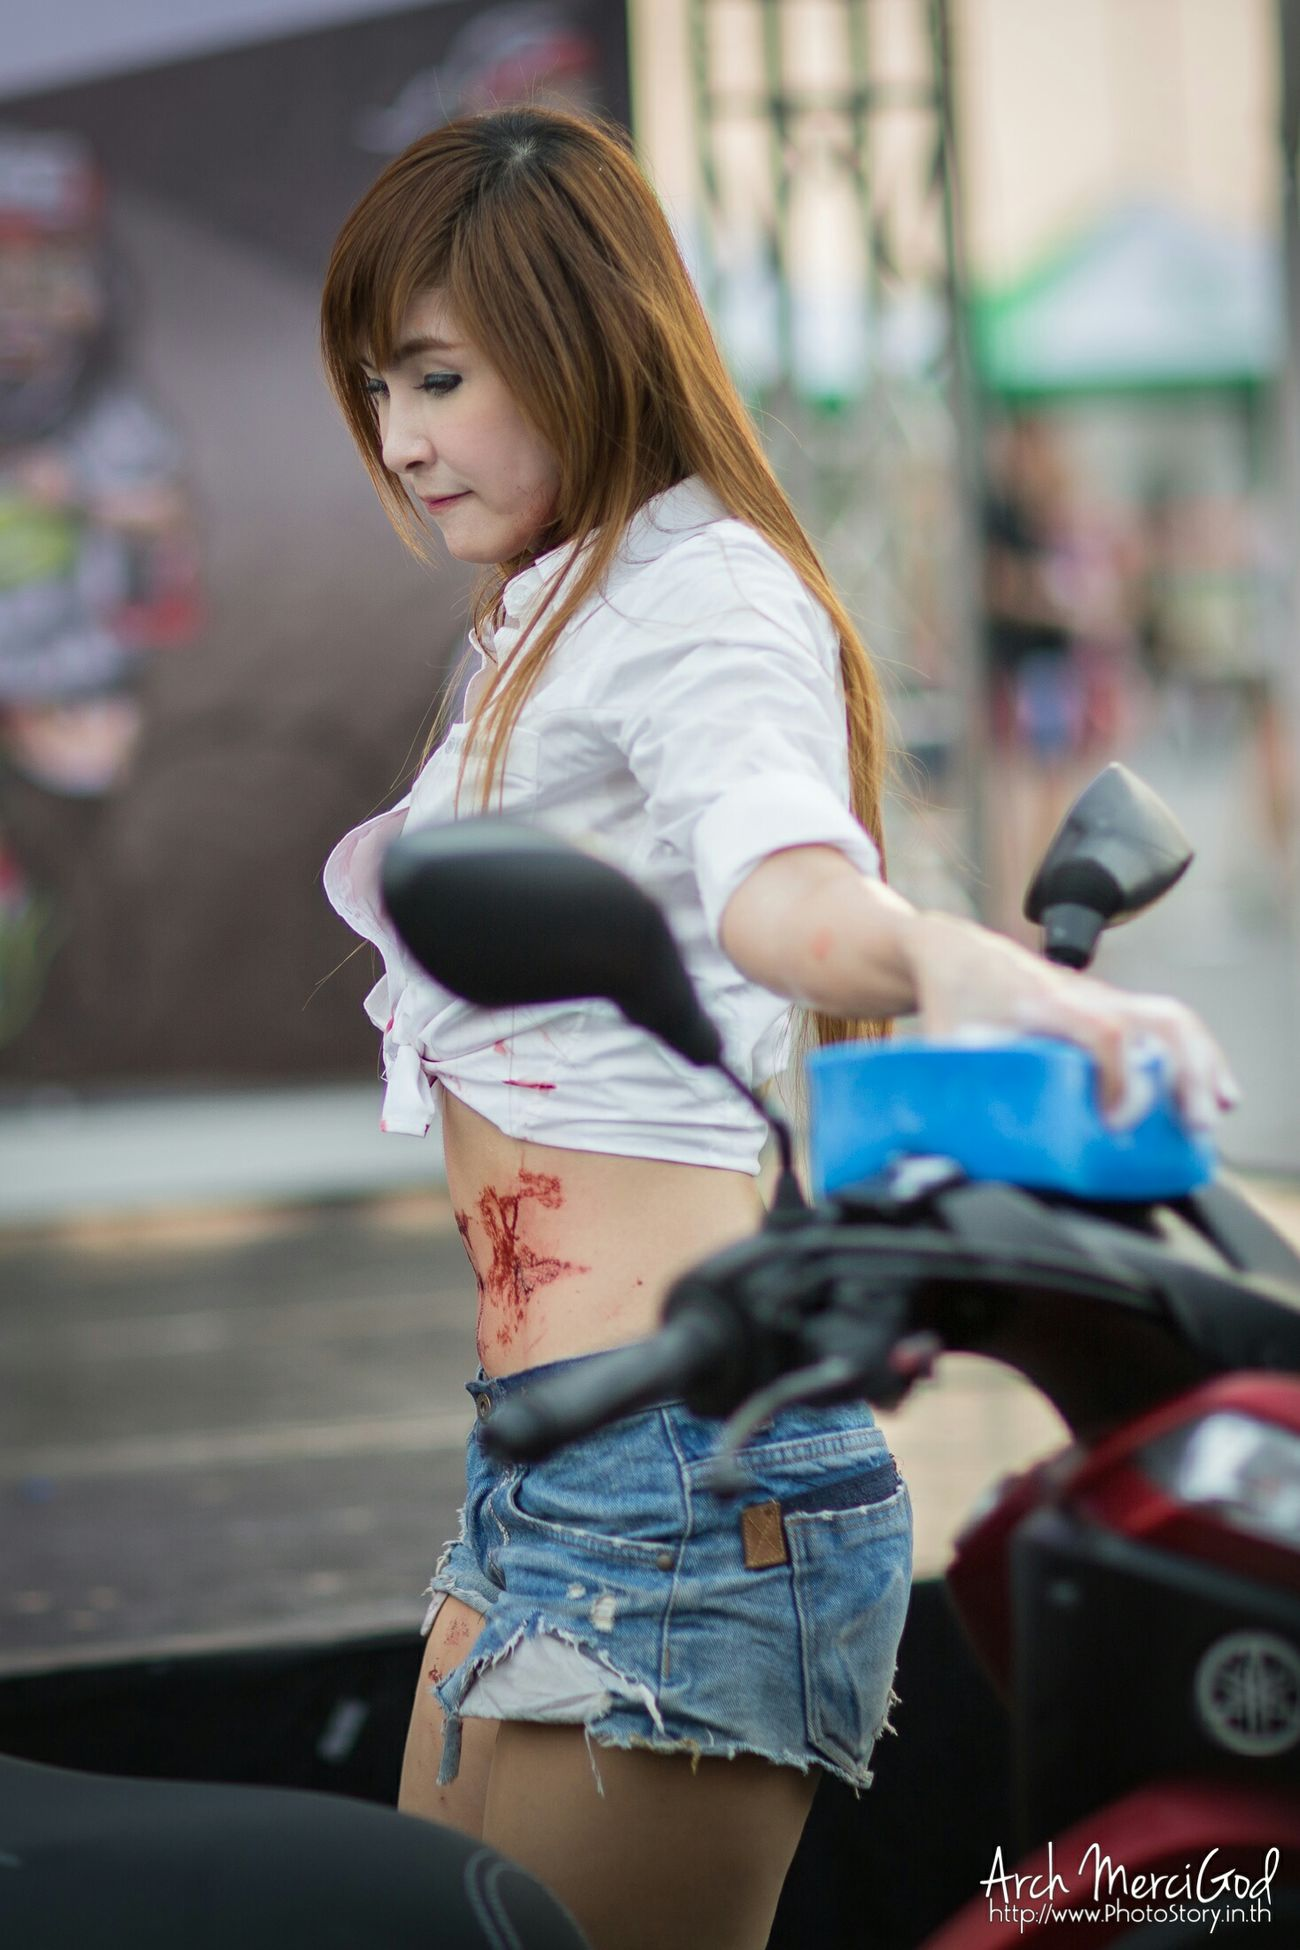 Run For Your Lifes Thailand http://www.photostory.in.th http://fb.me/ArchMerciGod Yamaha Rfylth Modelgirl RFYL Sexygirl Model Pose Beautiful Girl RFYLasia Candid Portrait